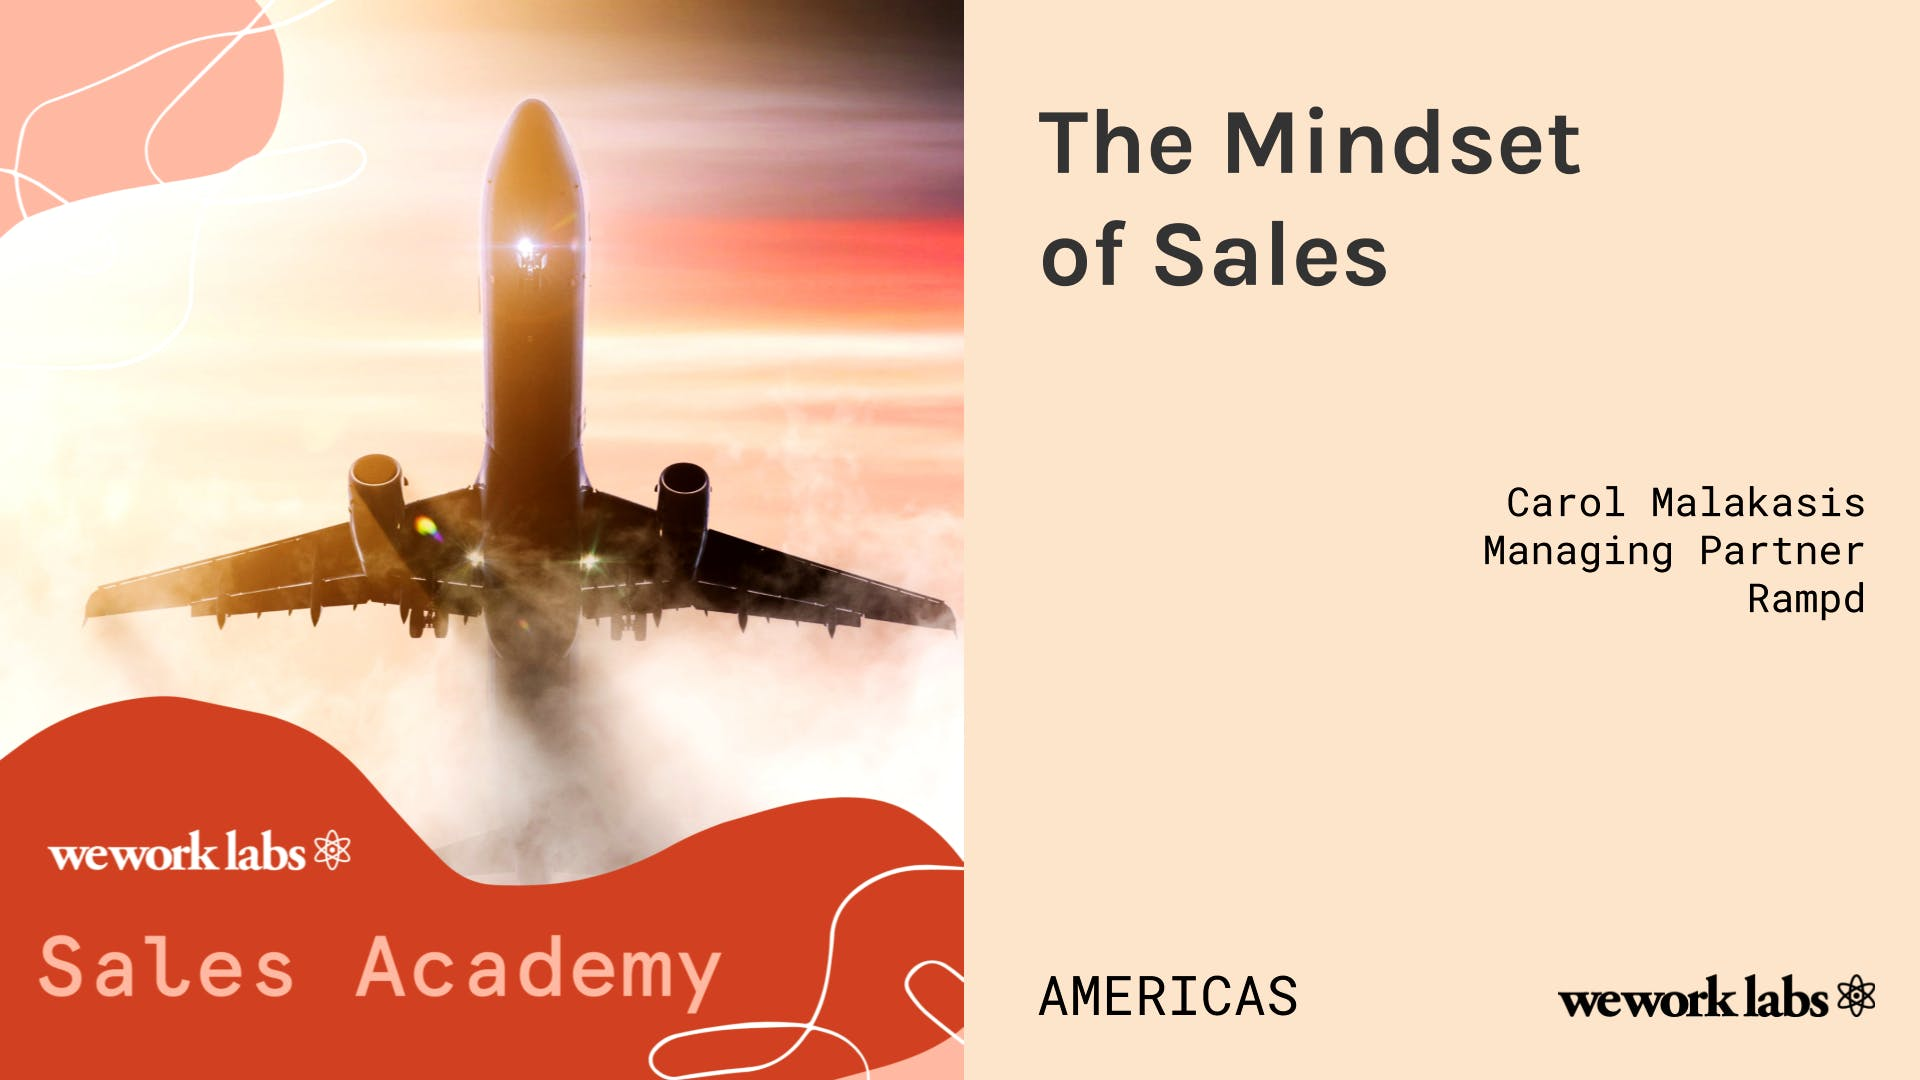 Sales Academy (Americas): The Mindset of Sales